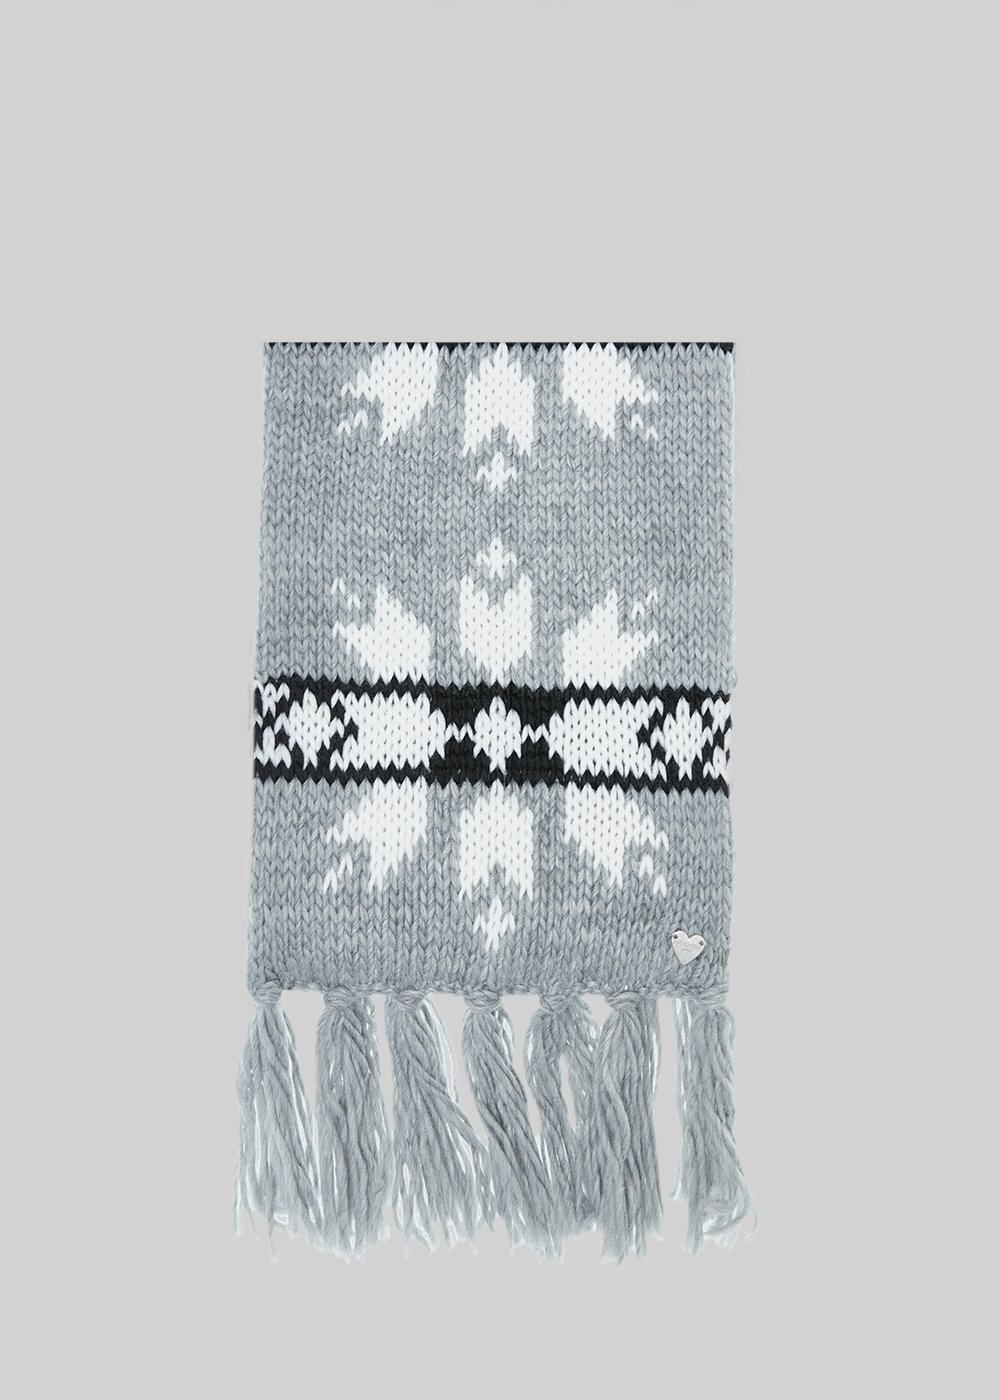 Sady scarf with snowflake pattern and fringes - Grey / White /  Black